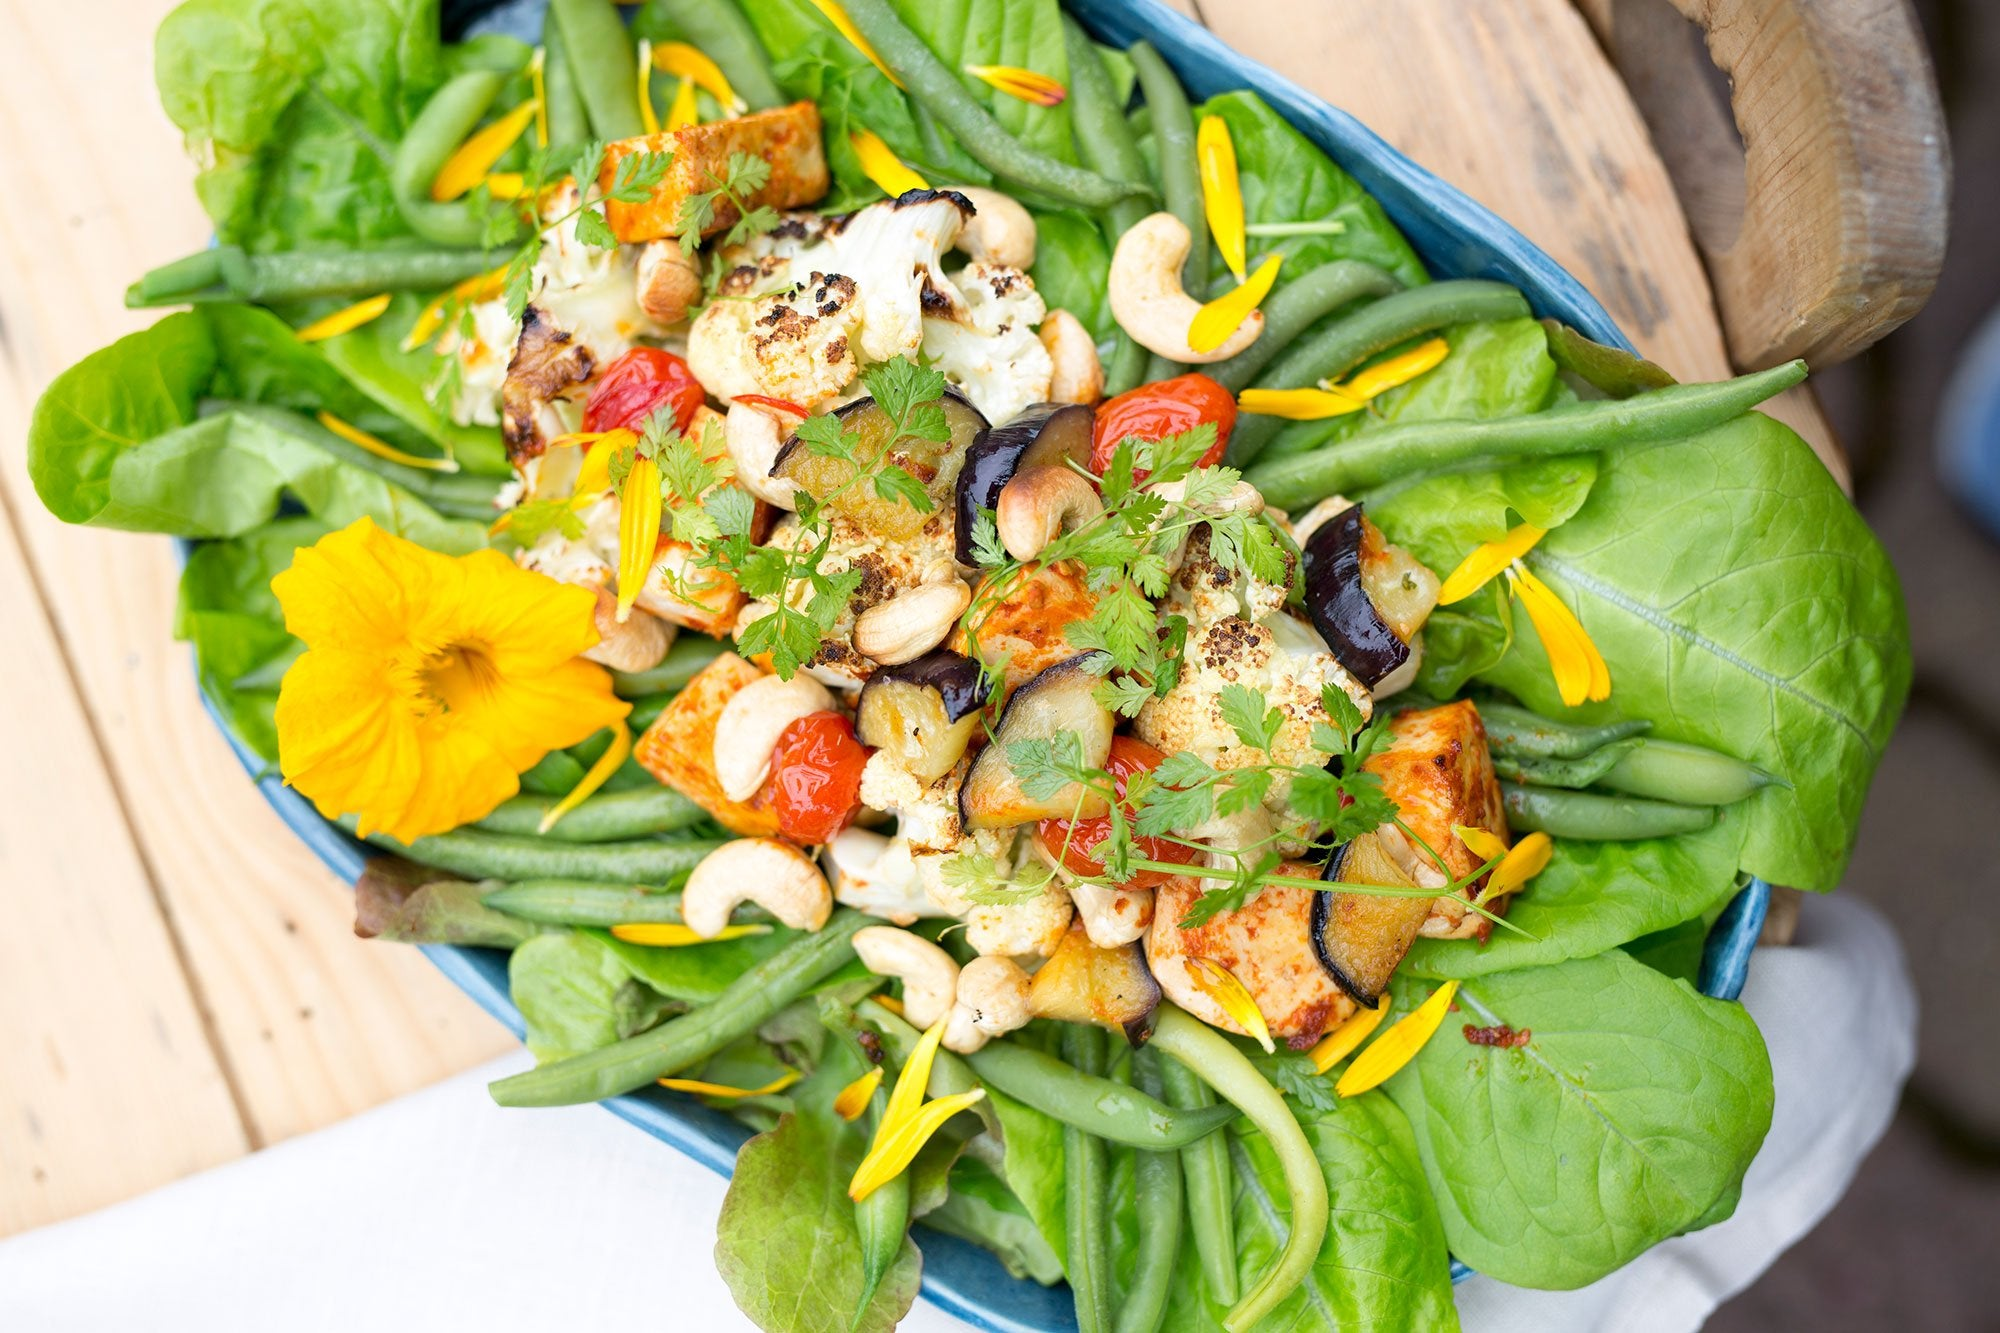 Spicy Tofu Salad with Cashews & Eggplant Featured Image